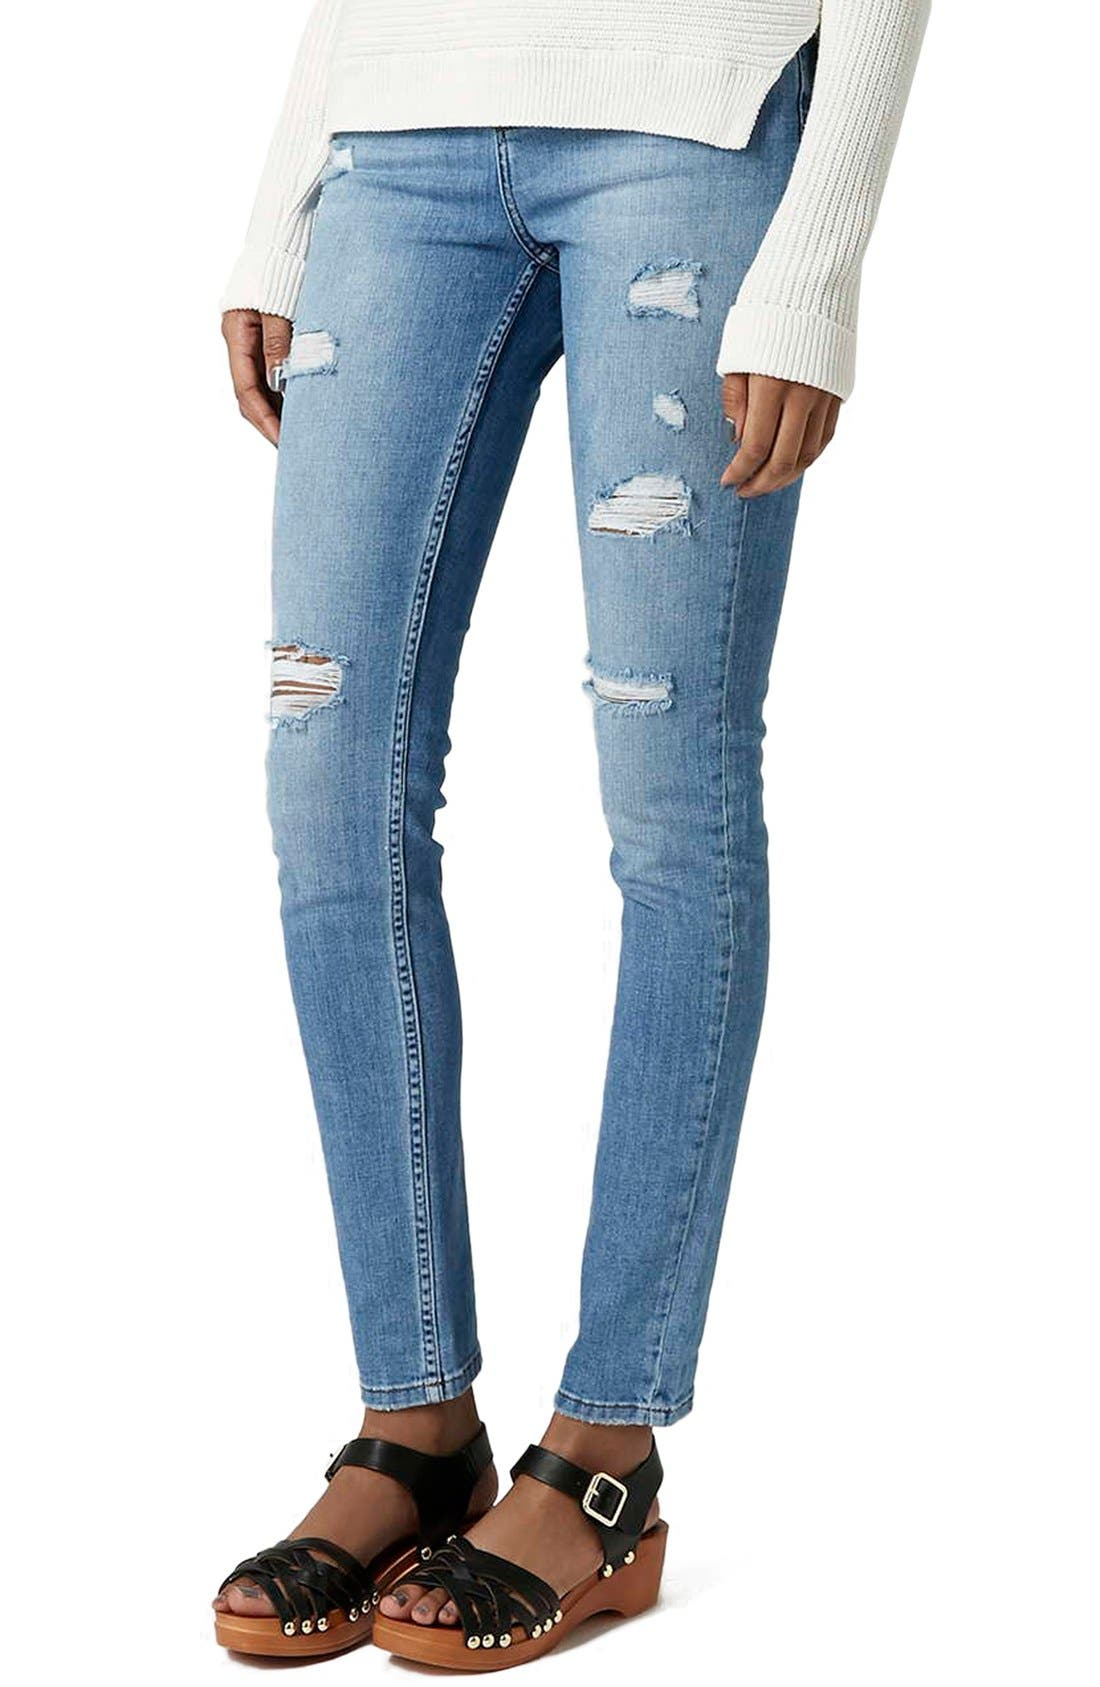 Alternate Image 1 Selected - Topshop Moto Ripped Skinny Jeans (Tall)